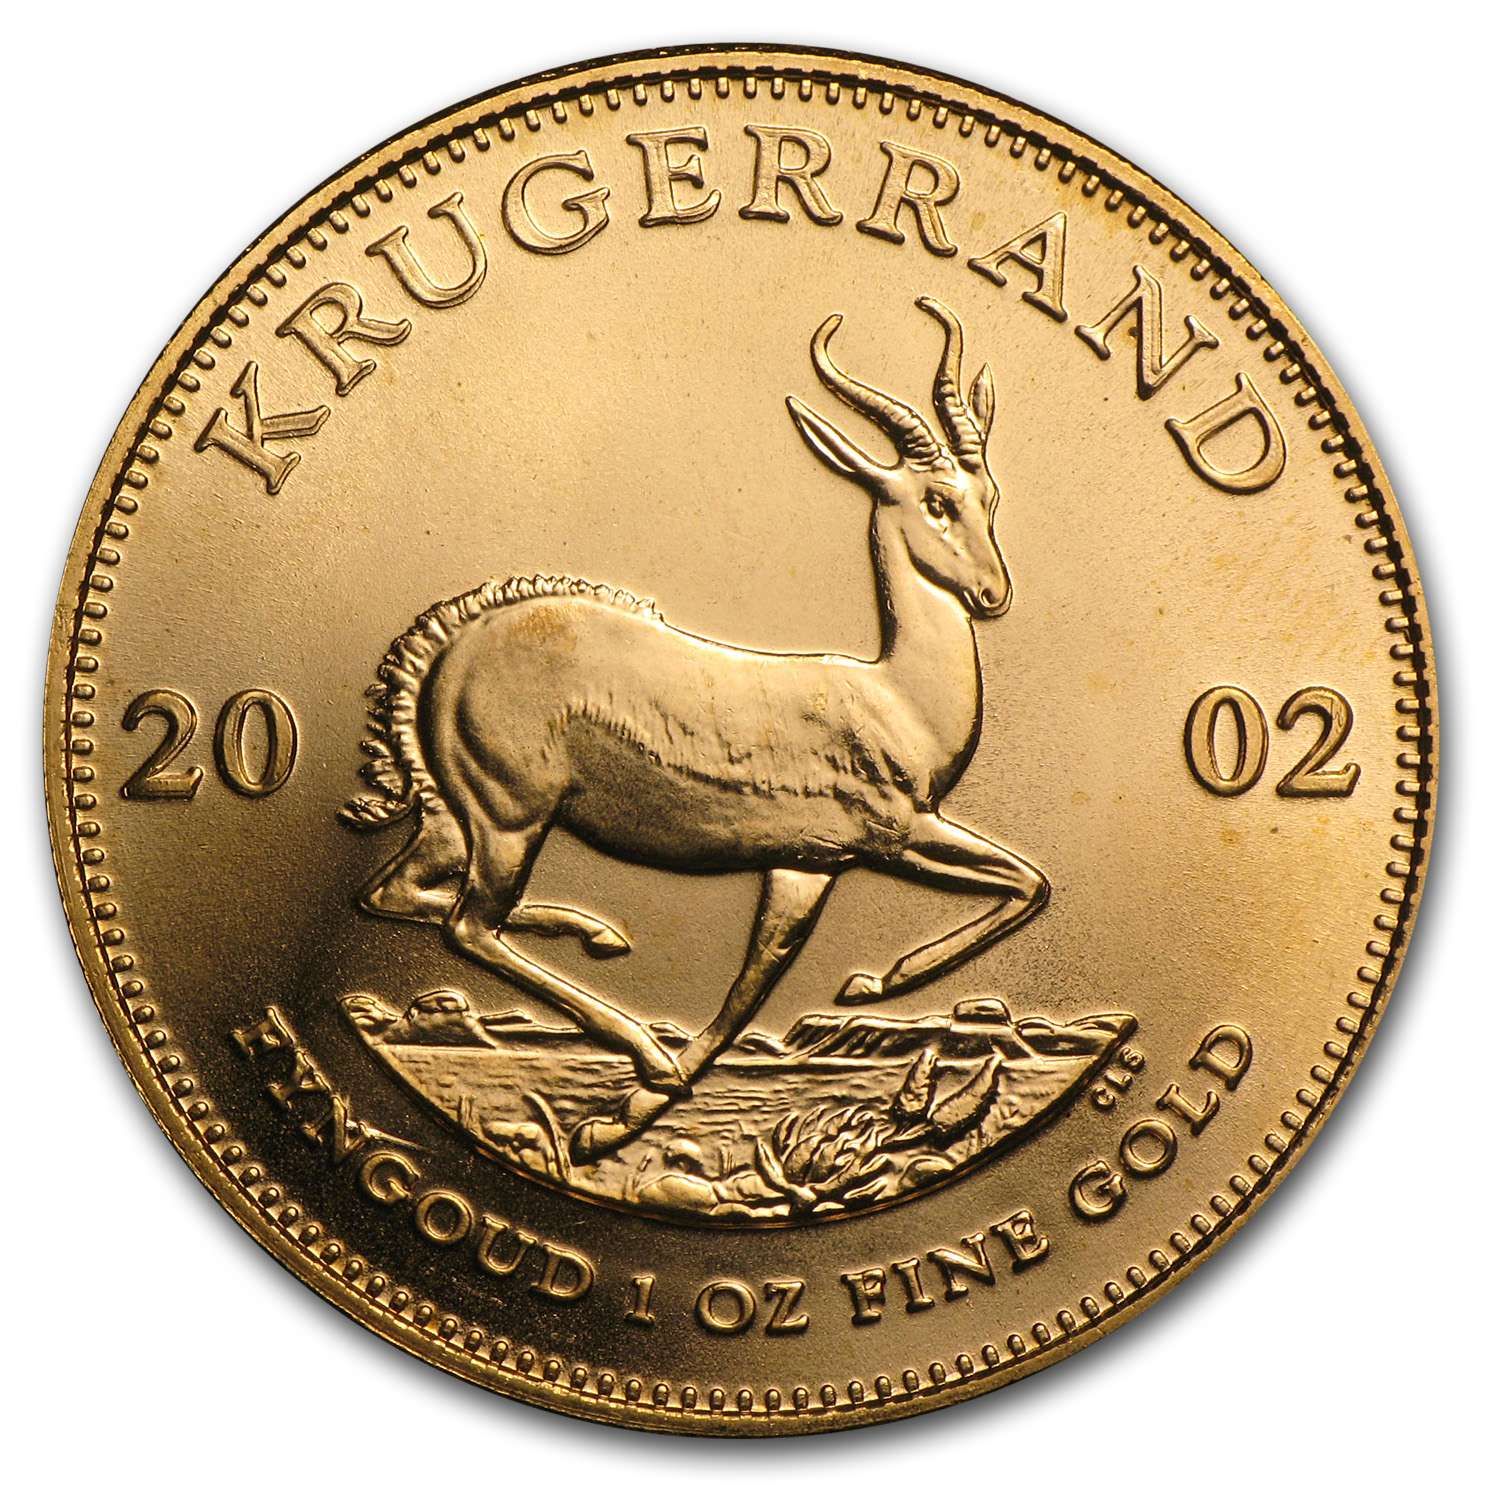 2002 1 oz Gold South African Krugerrand